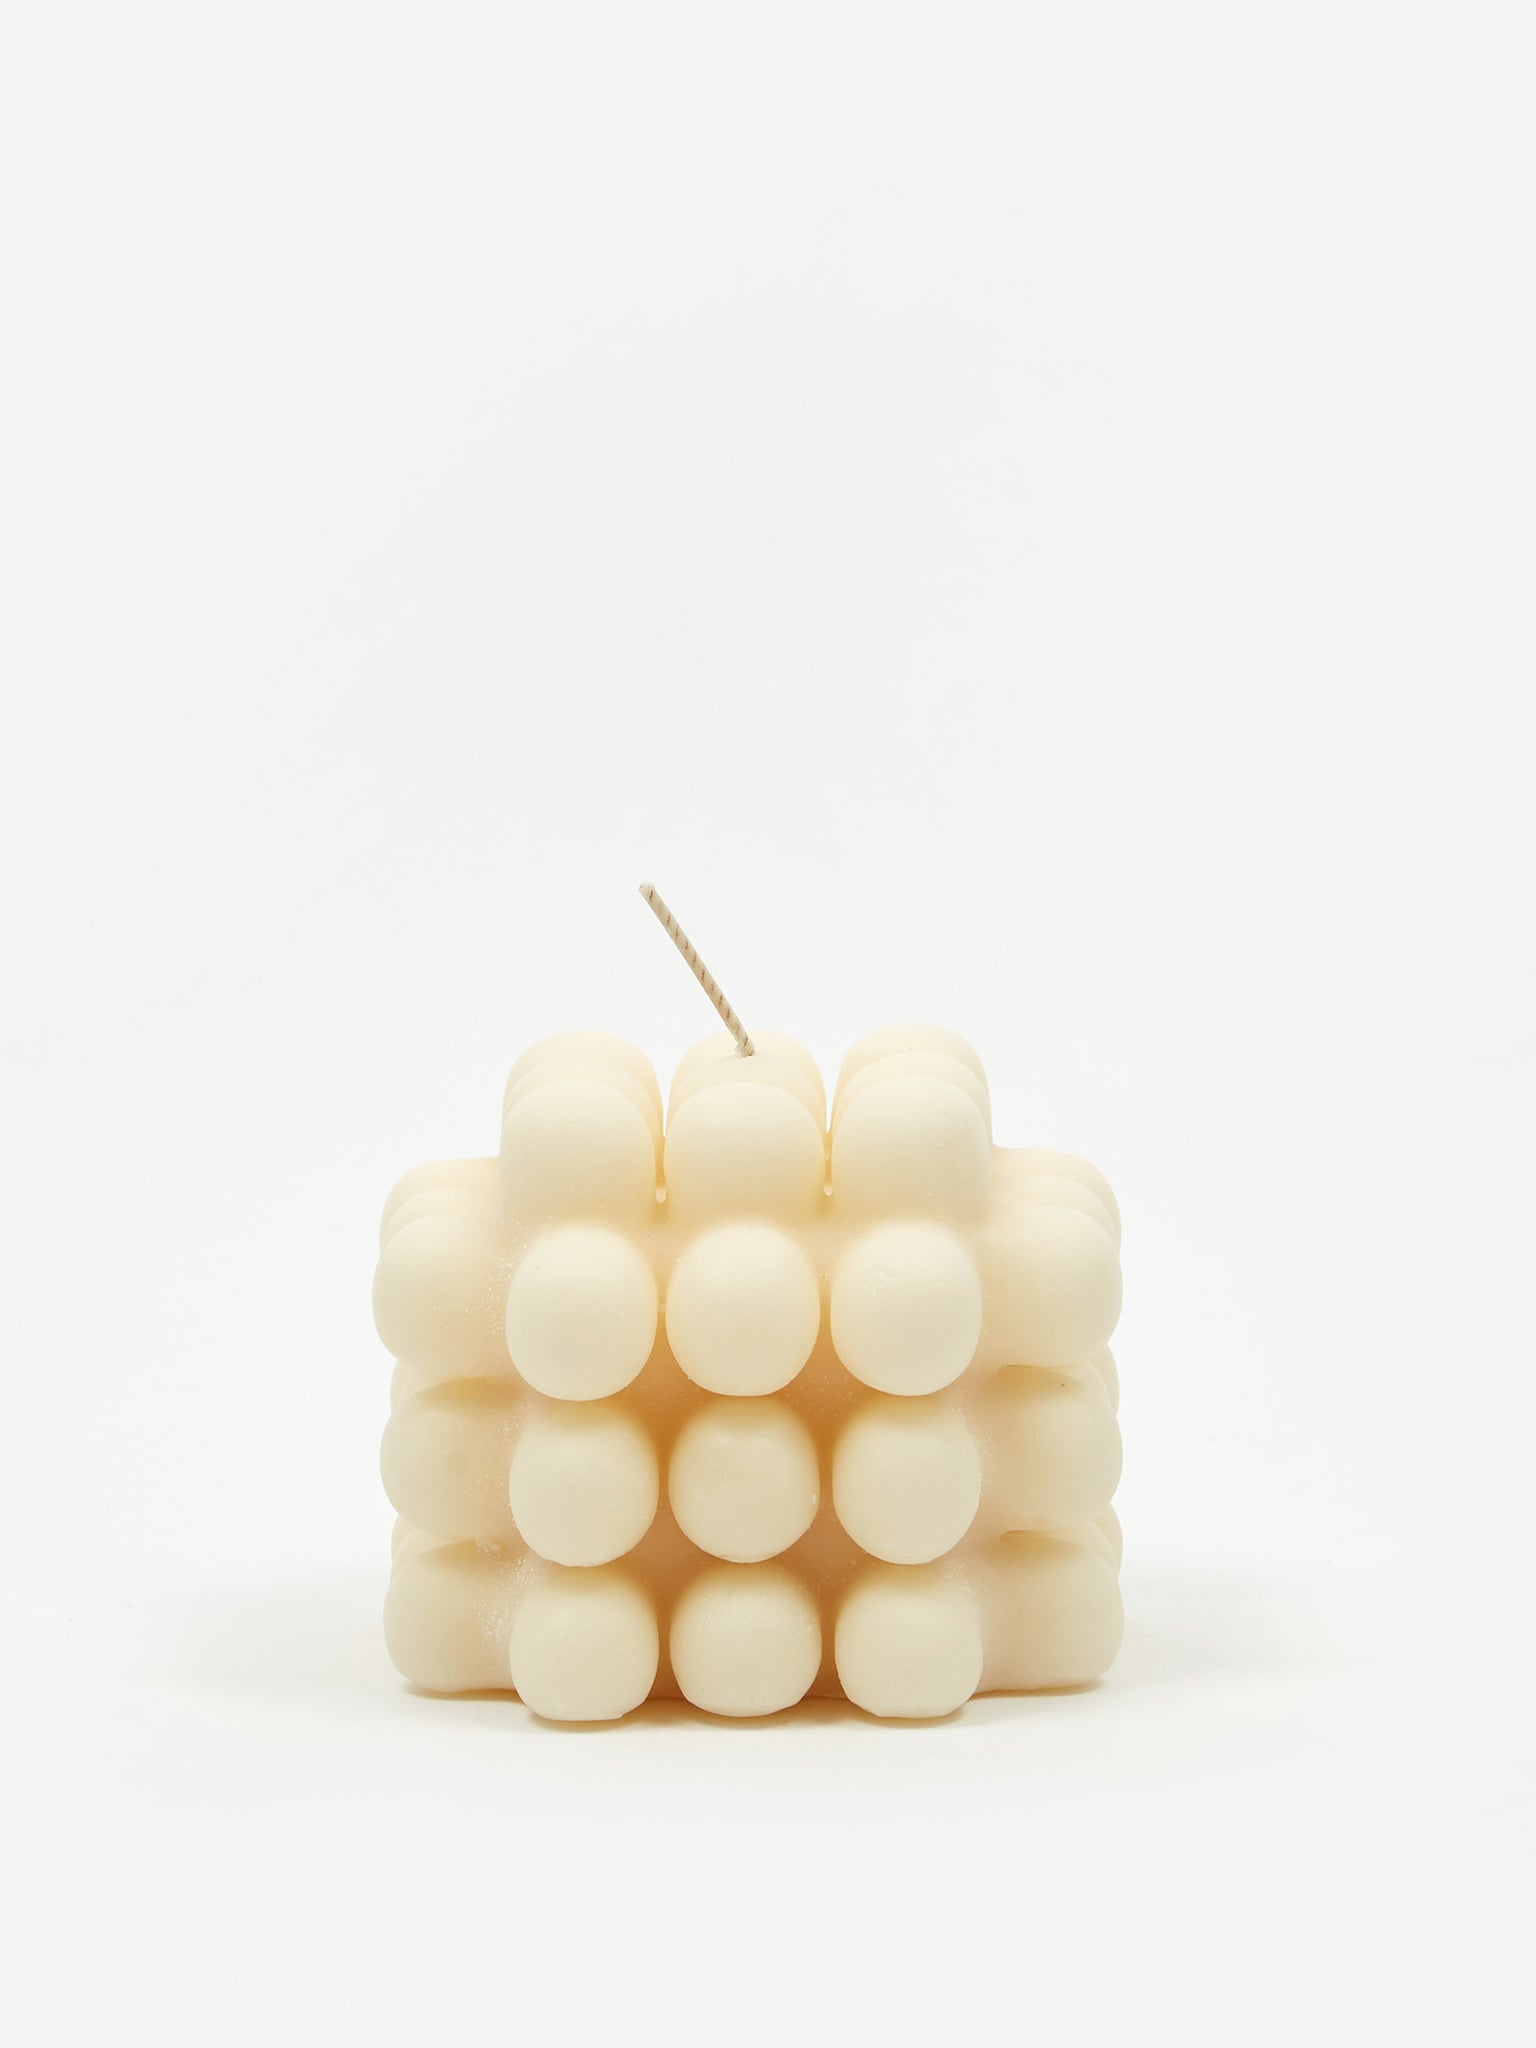 Andrej Urem Milk Sculptural Candle